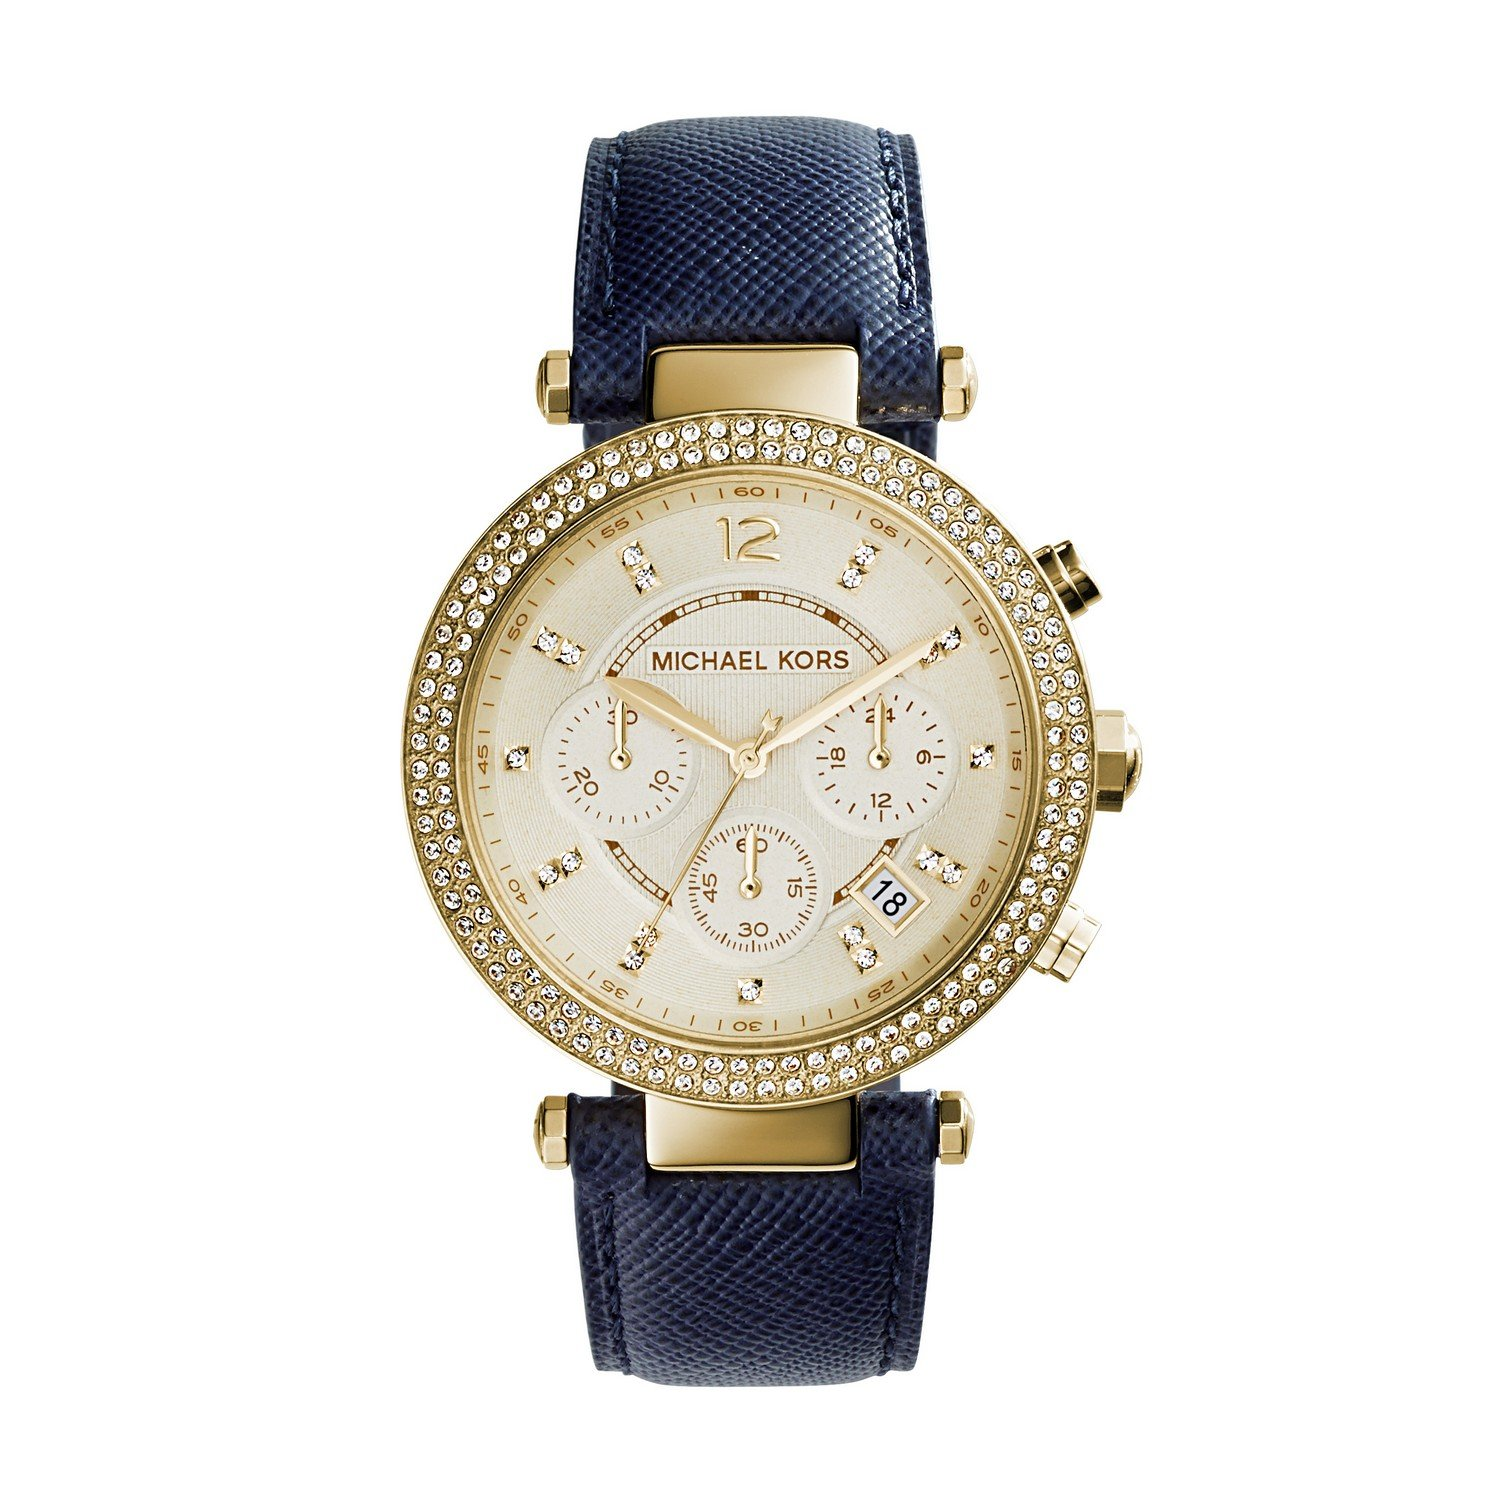 Amazon.com: Michael Kors Women\u0027s Parker Blue Watch MK2280: Michael Kors:  Watches